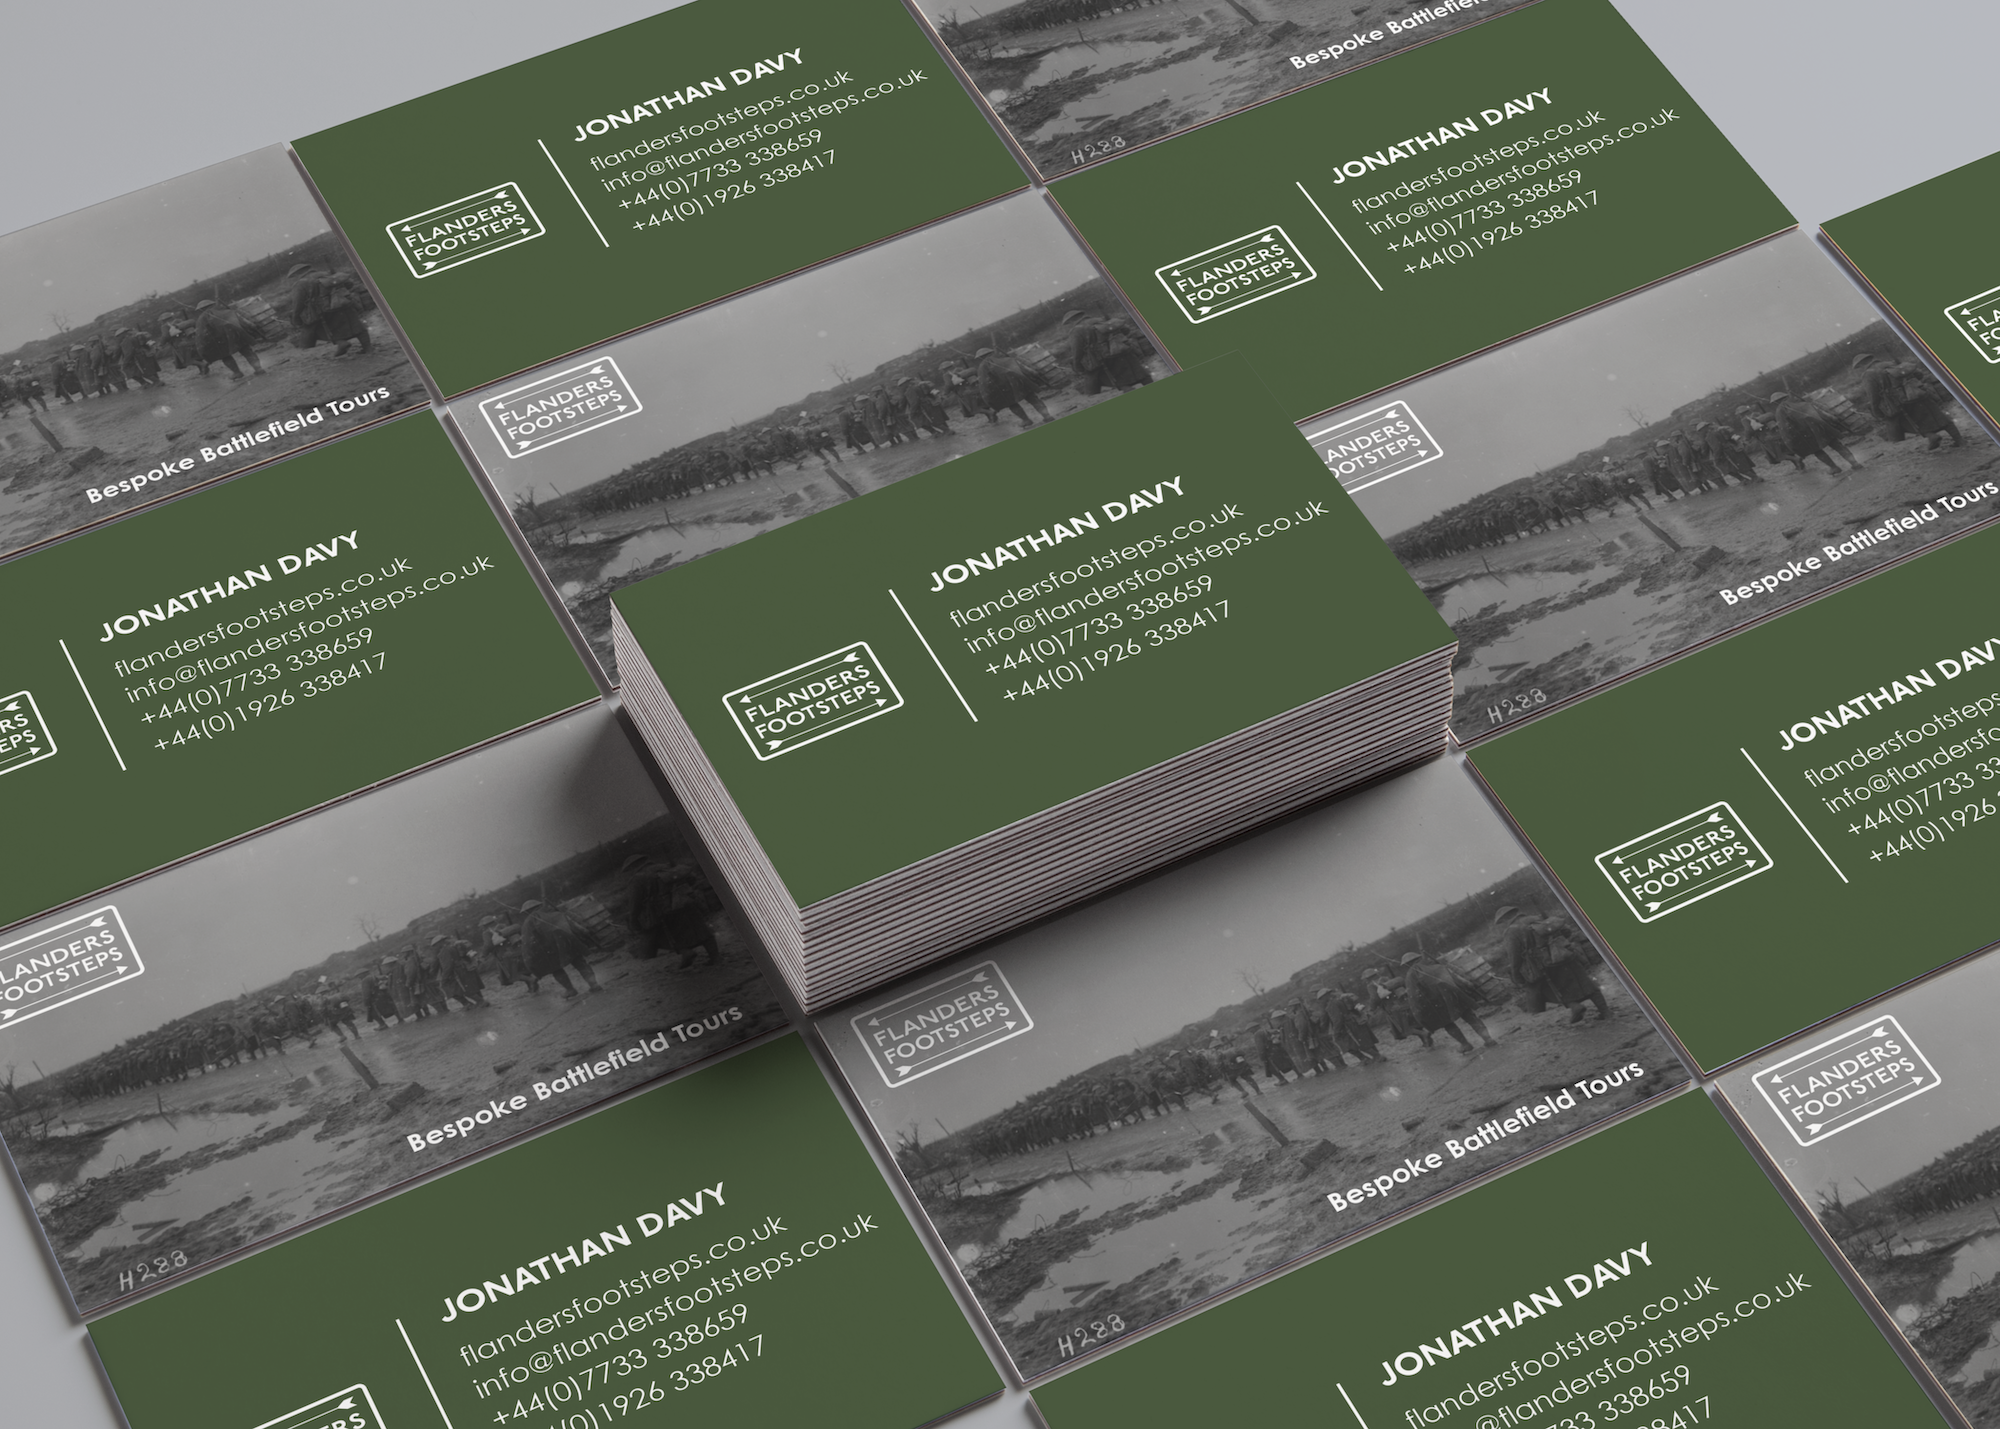 Flanders Footsteps Business Cards designed by Emma Scott Web Design